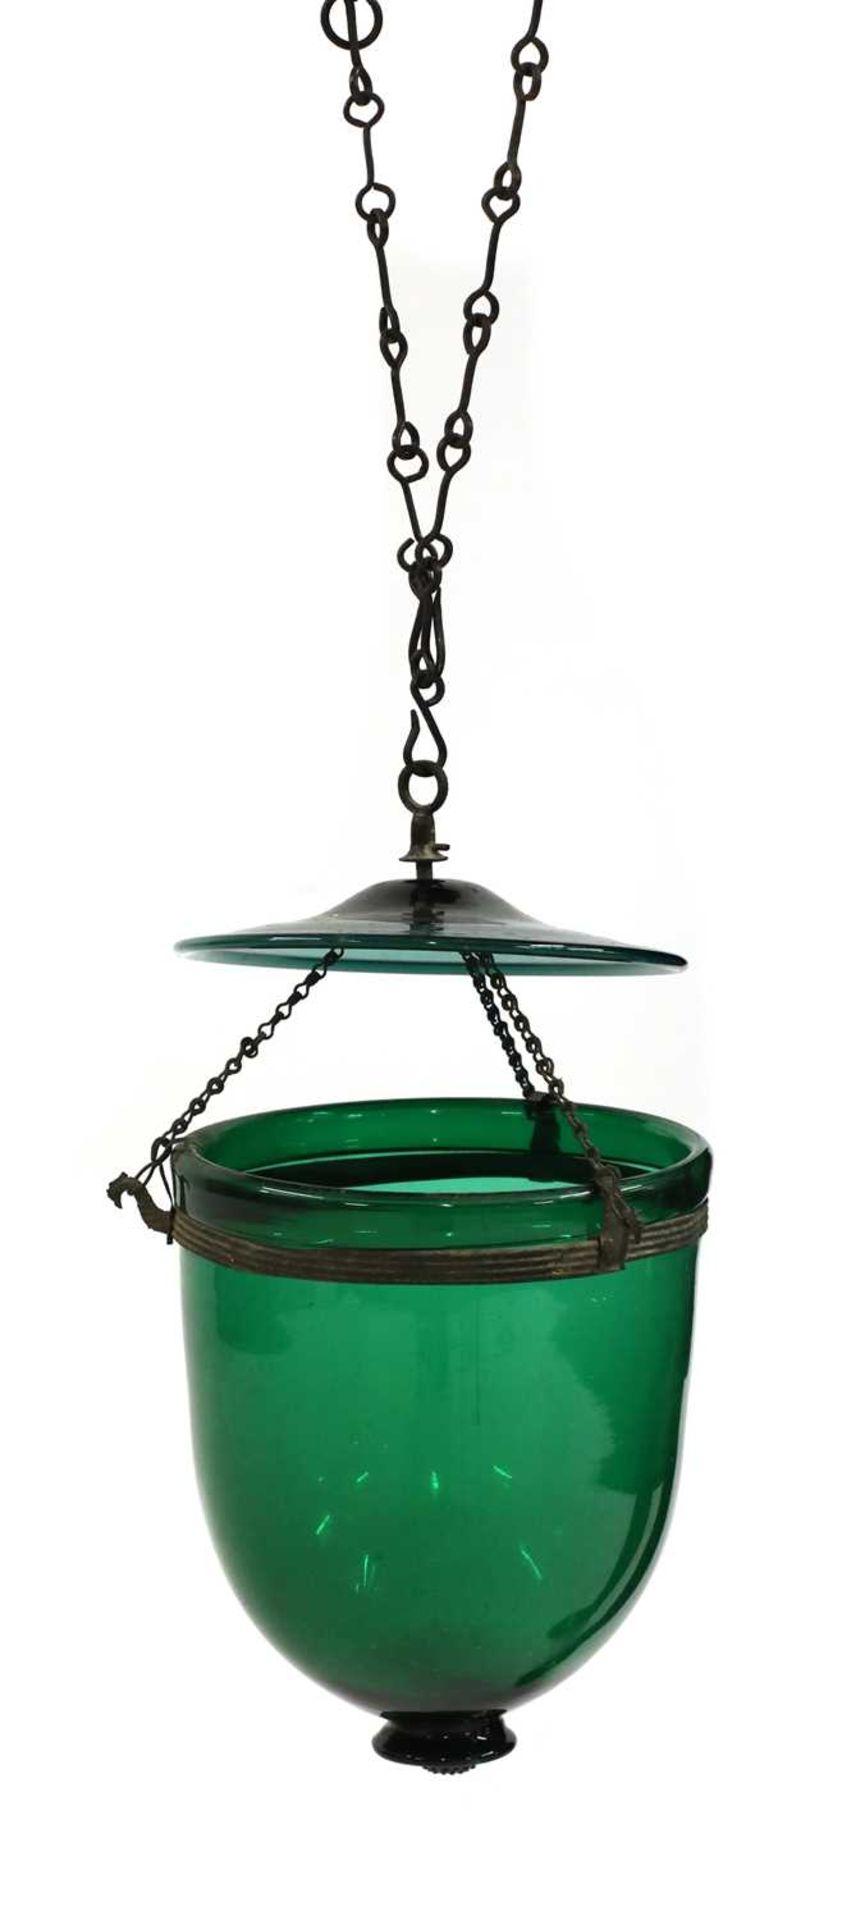 A George III-style green glass hanging lantern